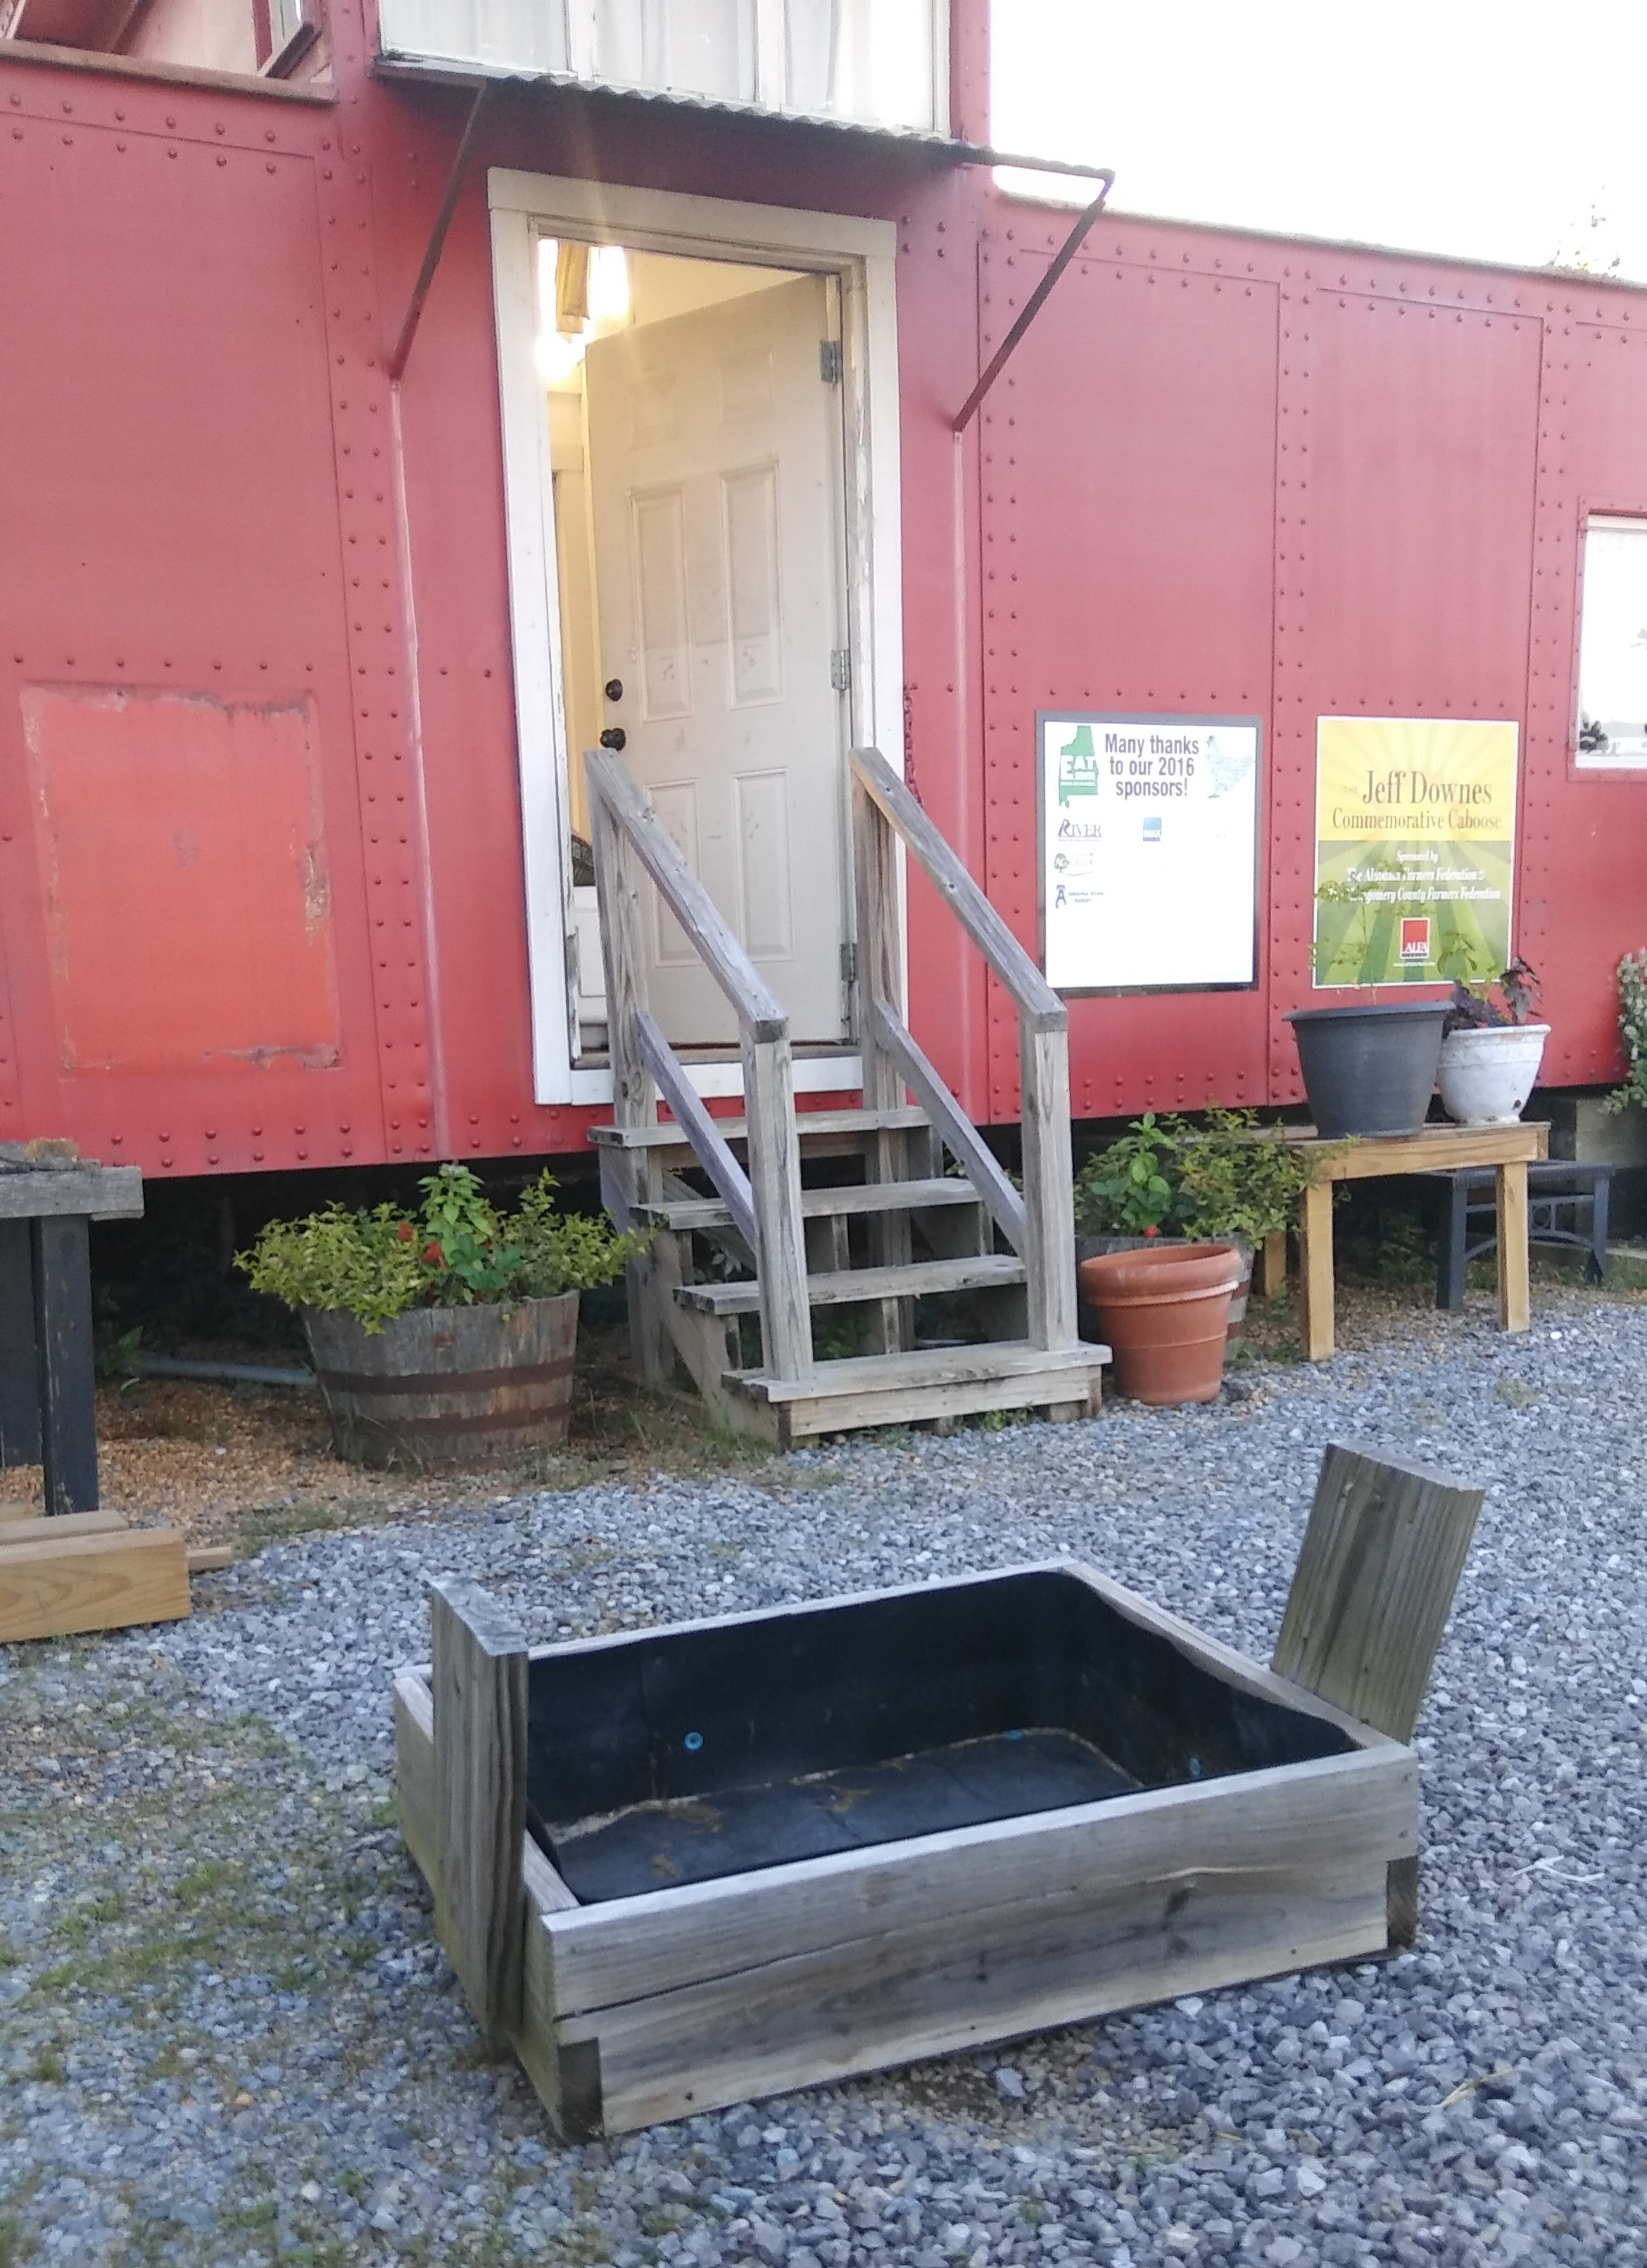 Planter boxes installed on the roof six years ago trapped water and caused the roof to rust. Off they went! They were heavy. We'll recycle them into planter boxes around the caboose.